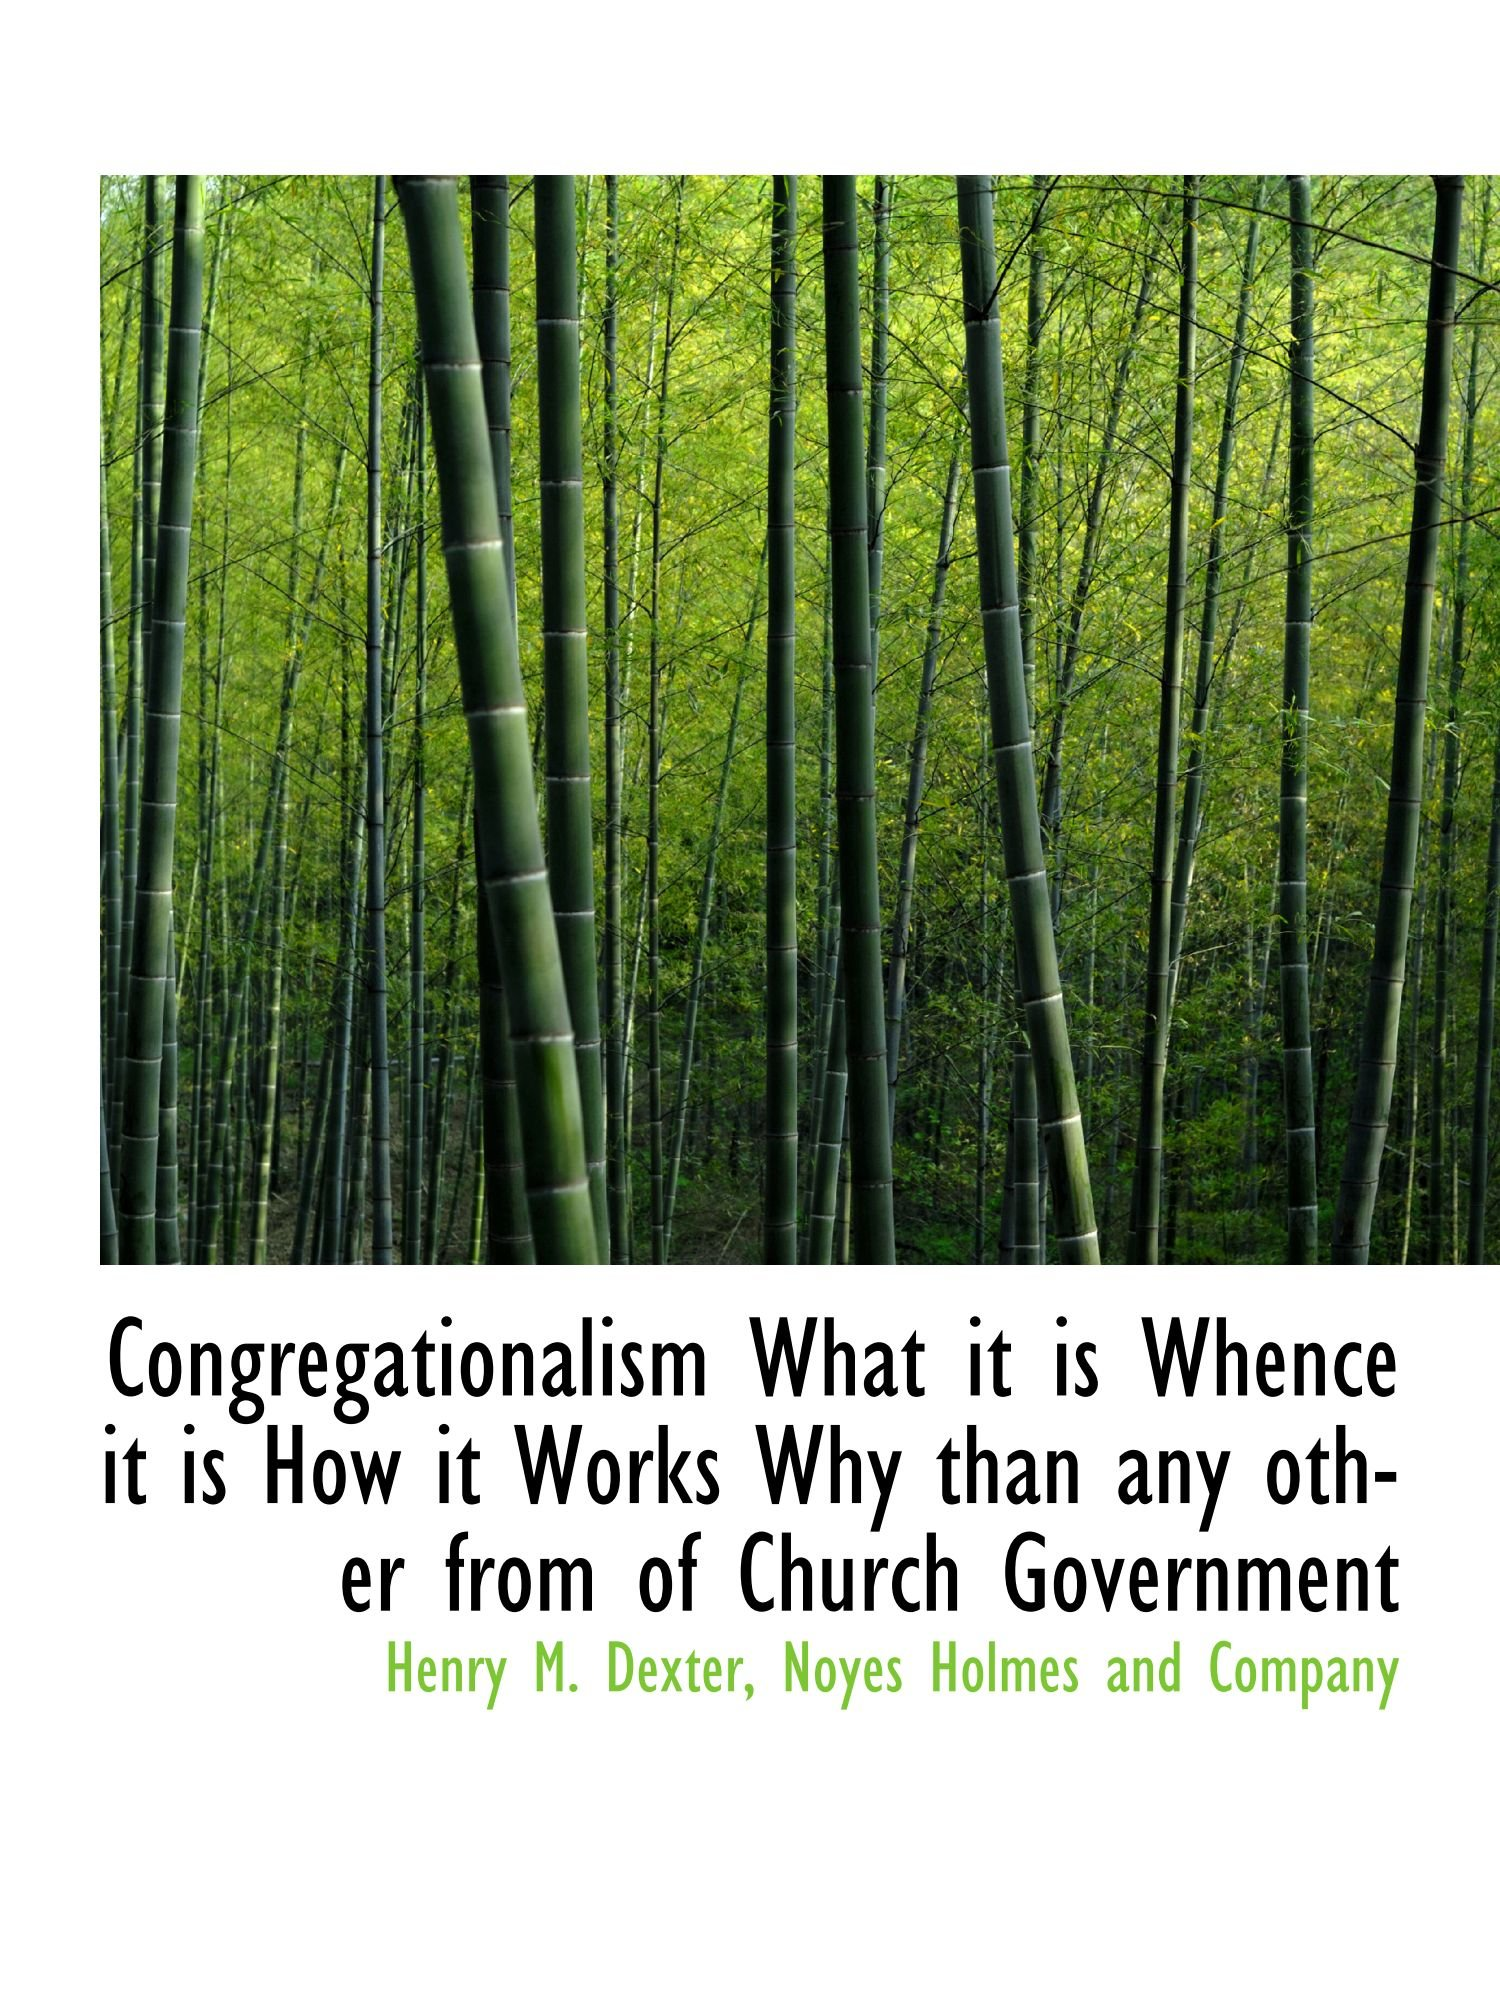 Congregationalism What it is Whence it is How it Works Why than any other from of Church Government pdf